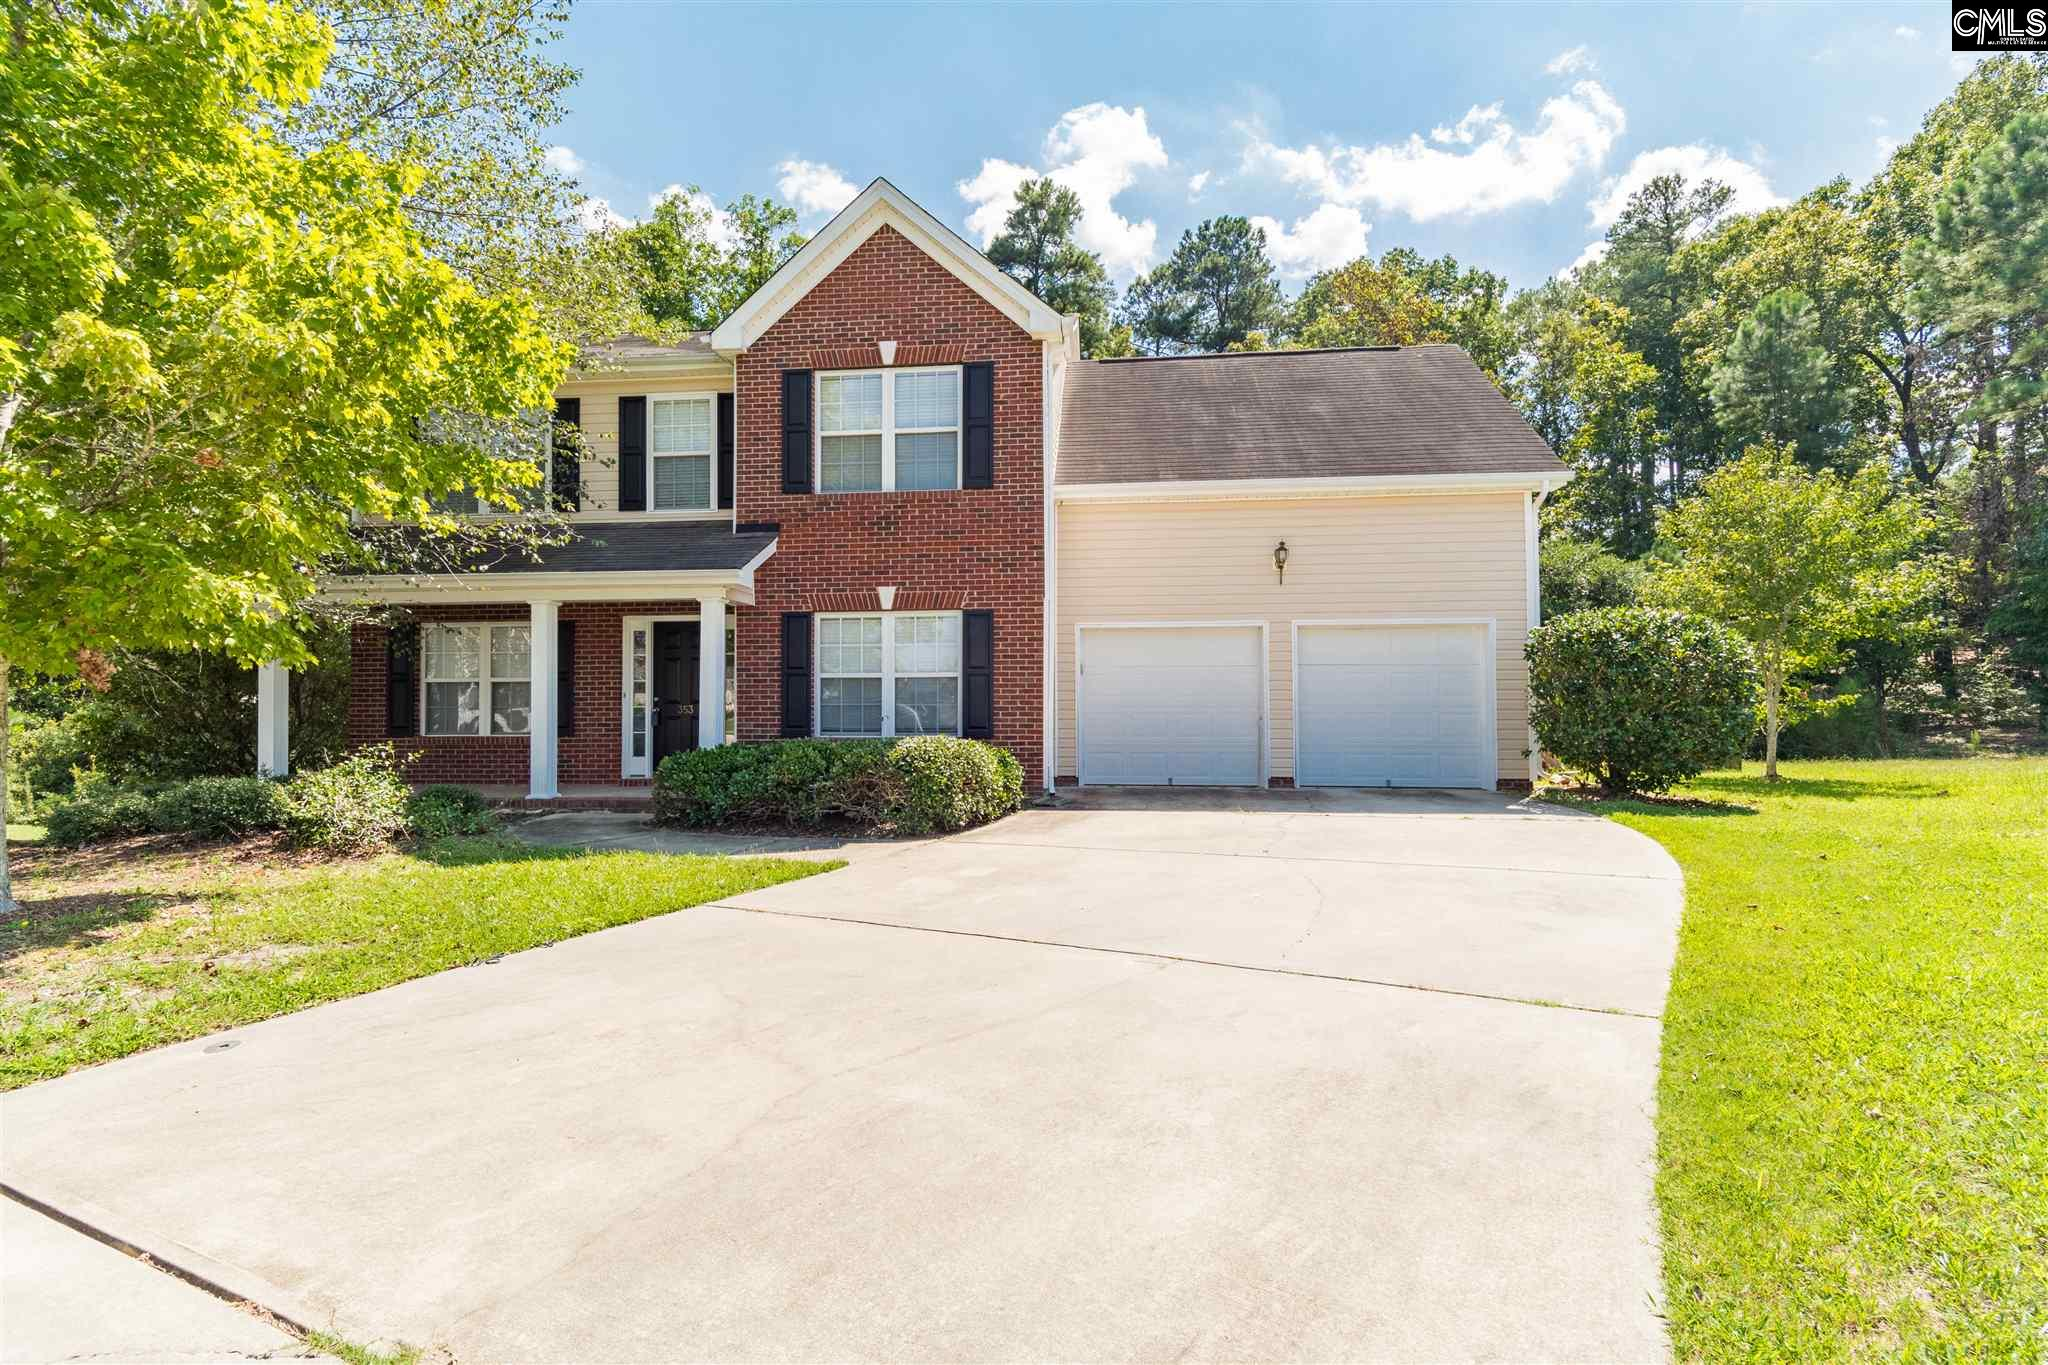 353 Southmen West Columbia, SC 29170